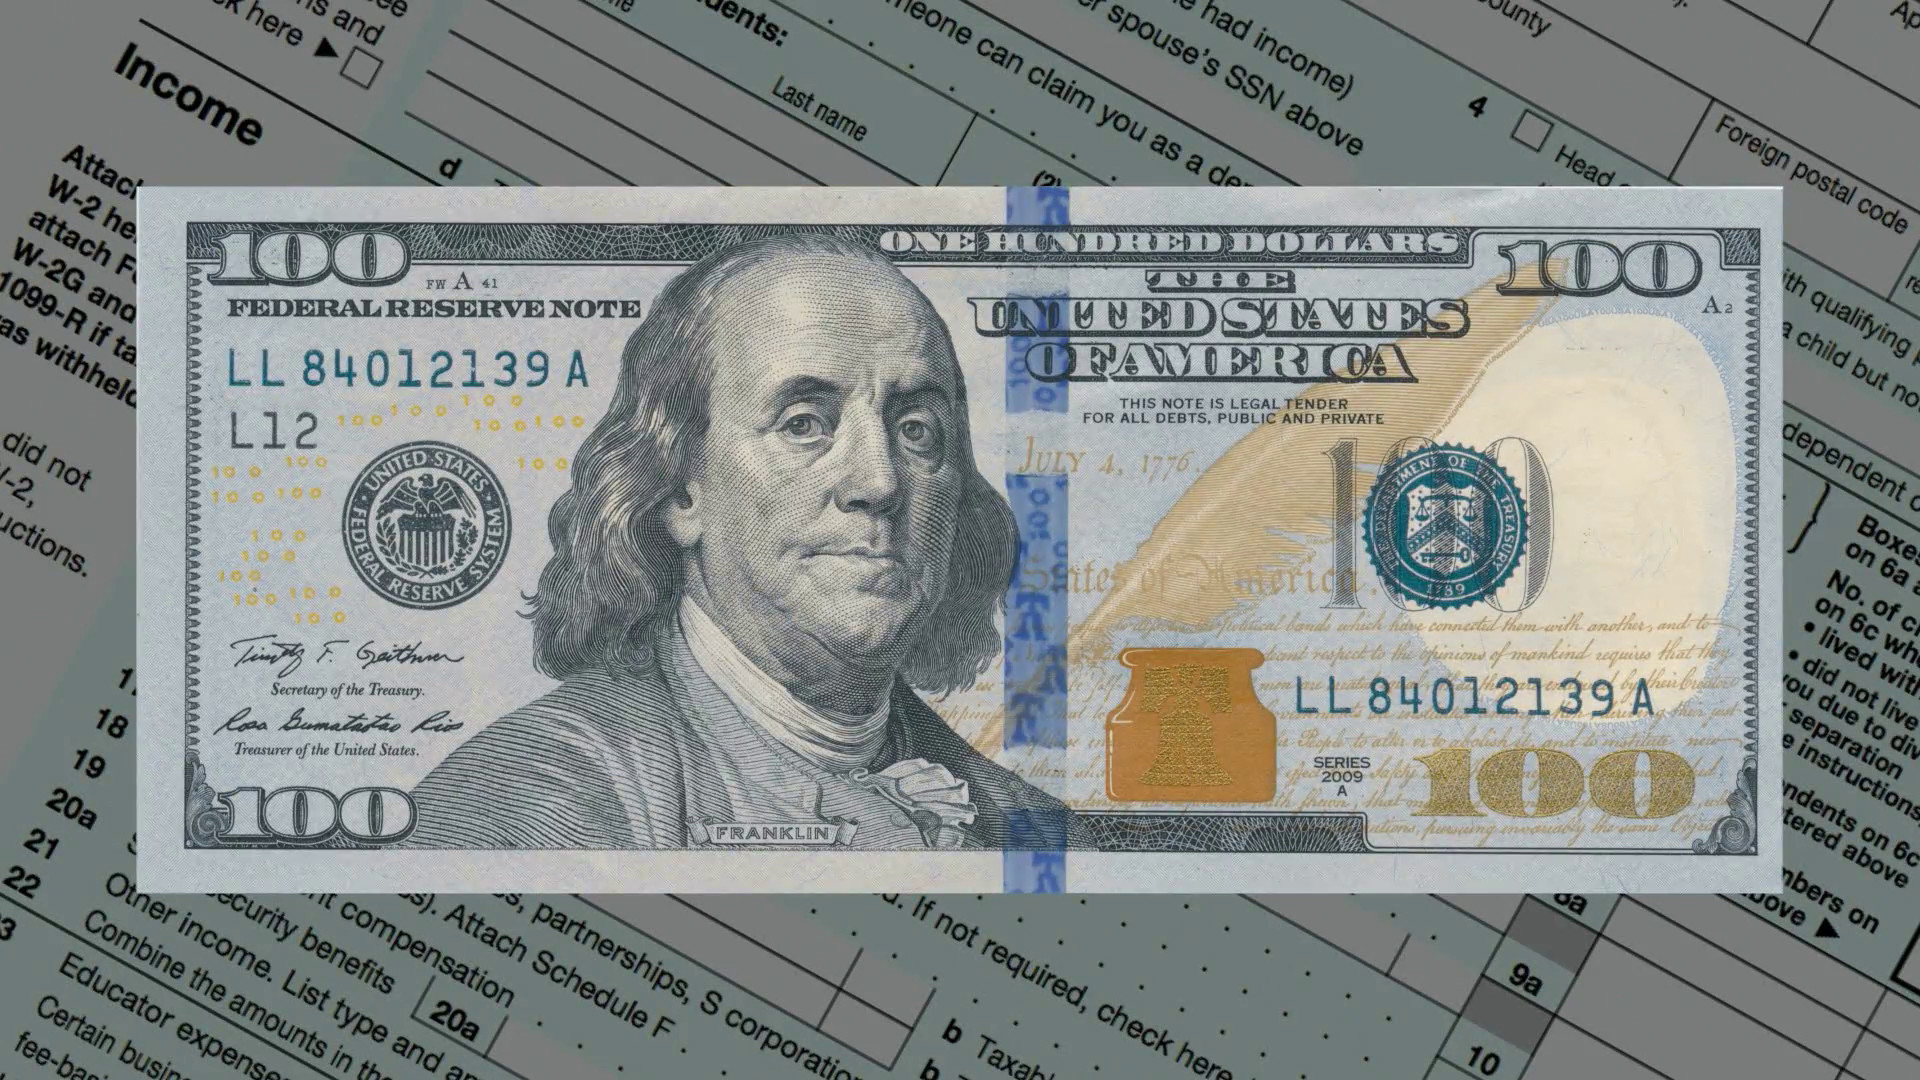 1920x1080 Income tax form with expanding one hundred dollar bill Motion Background -  VideoBlocks